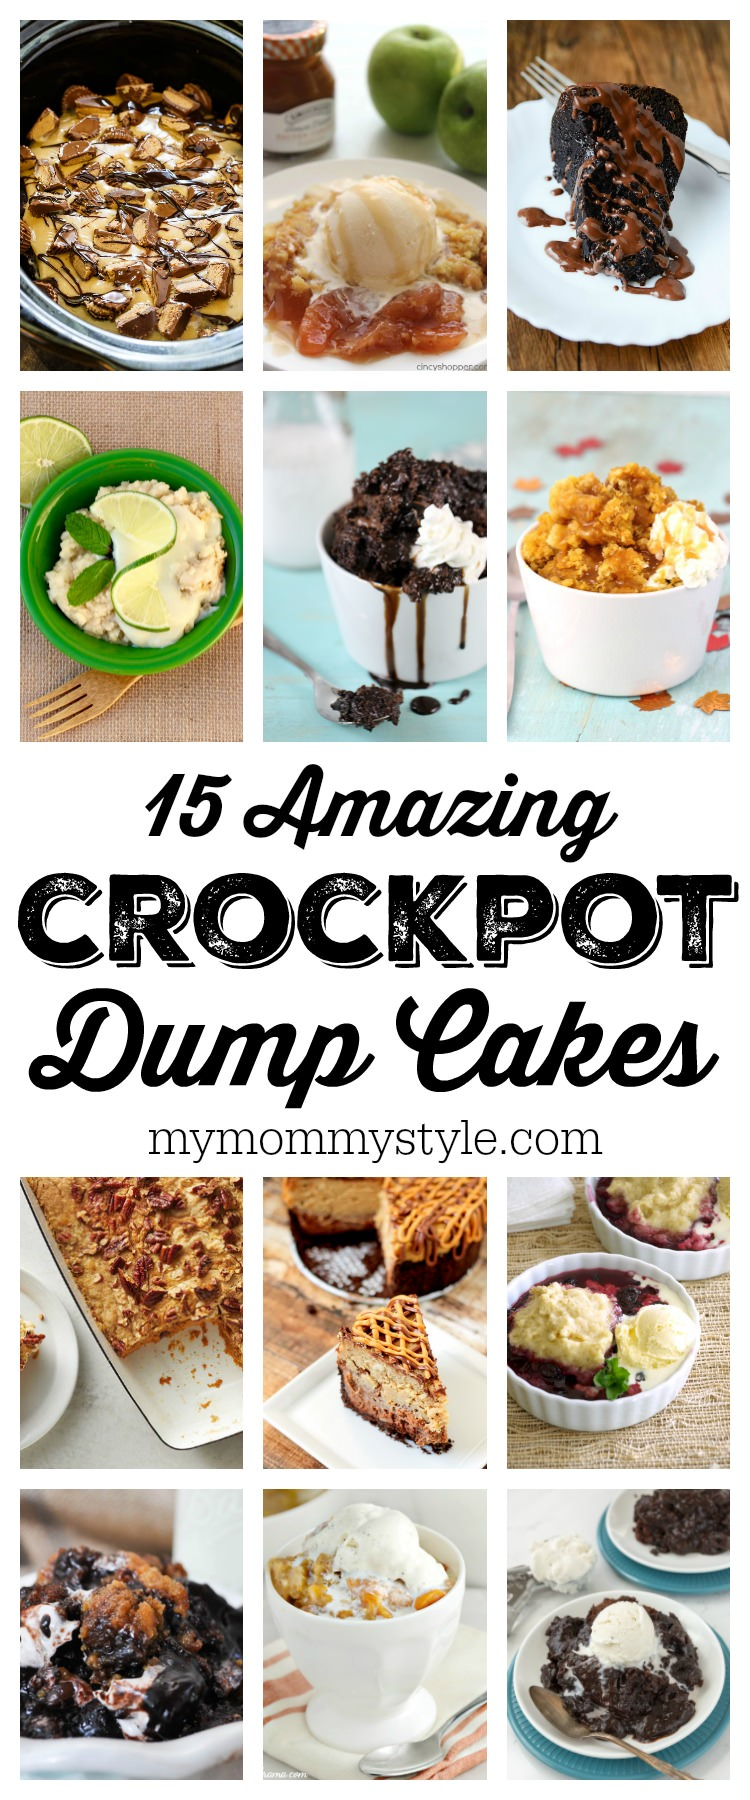 With a crockpot cake, you just dump the ingredients into the Crock Pot and a few hours later you are rewarded with a warm irresistible dessert. via @mymommystyle